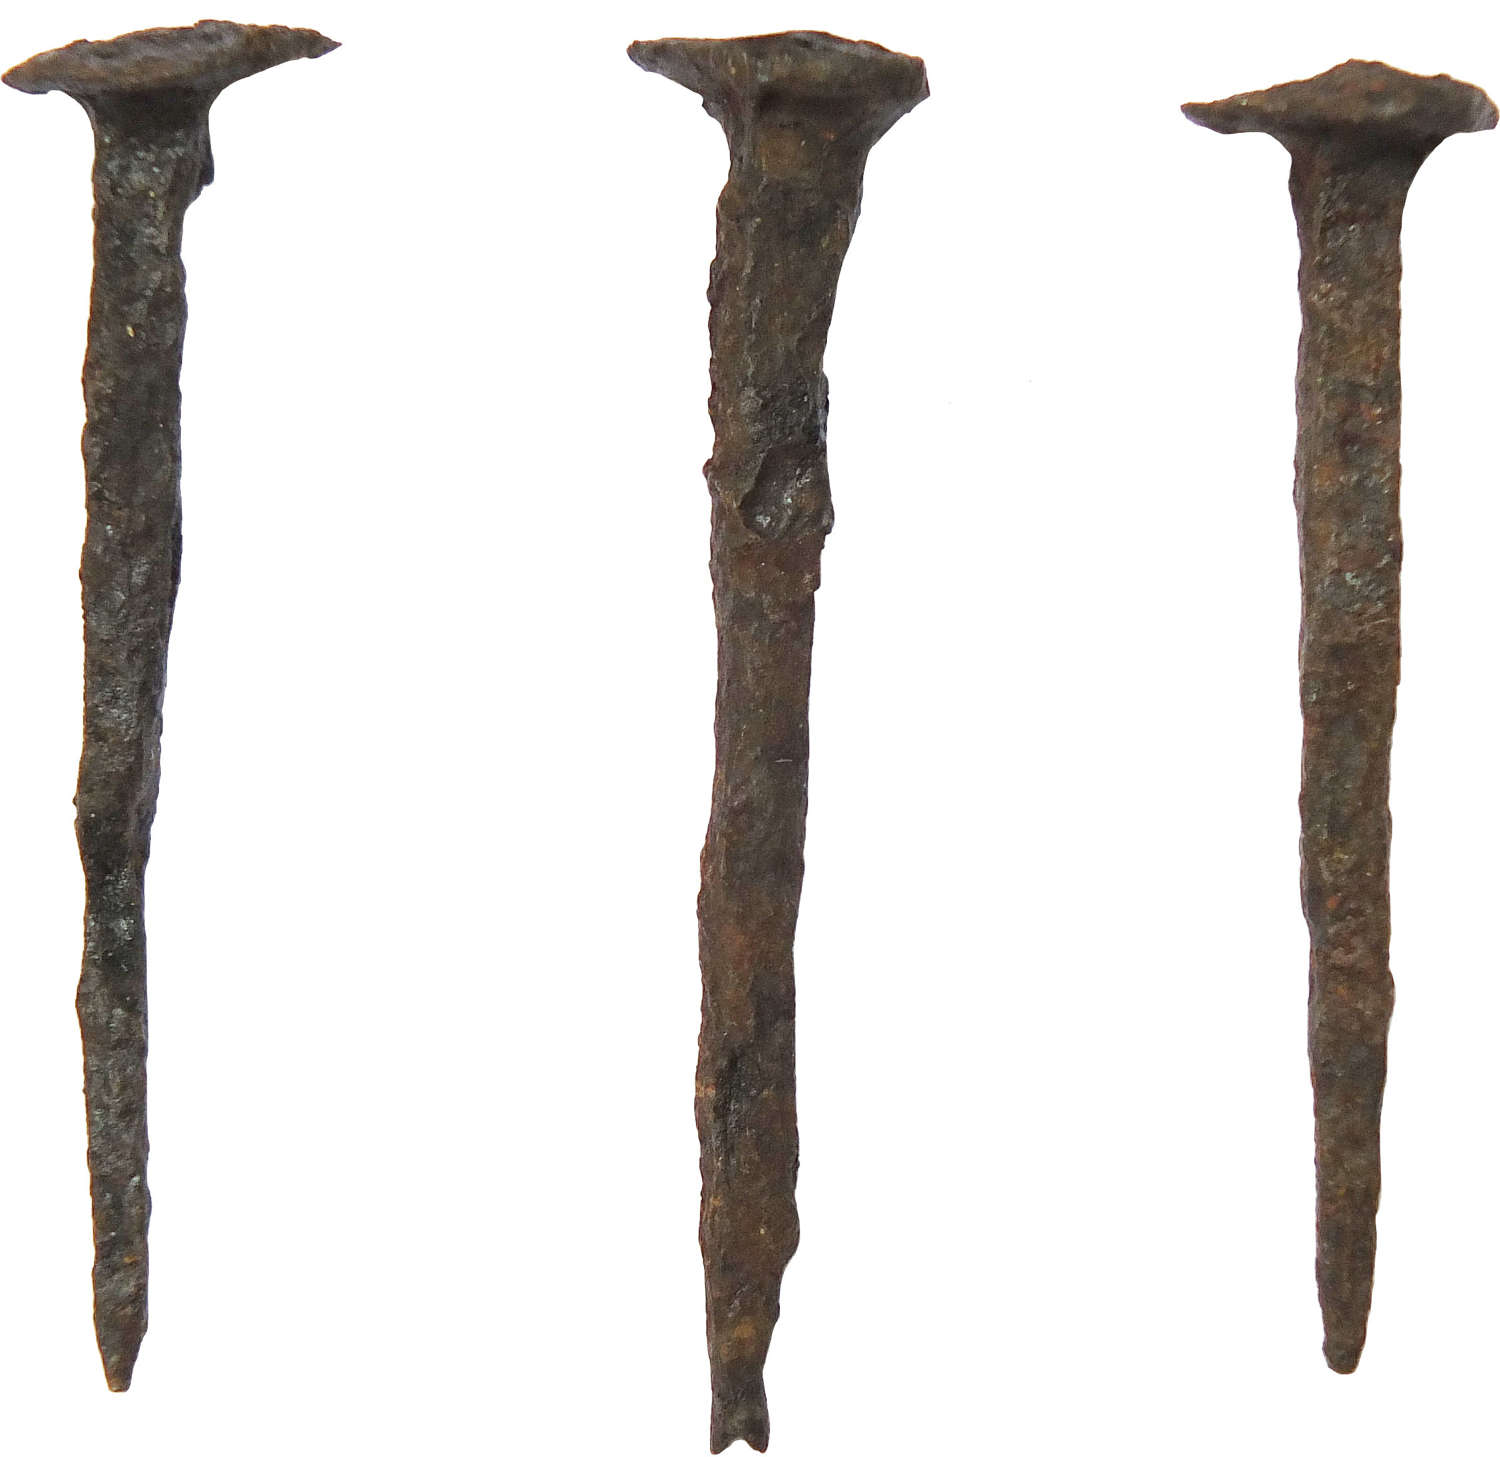 Roman iron nails from the famous Inchtuthil nail hoard, 87 A.D.